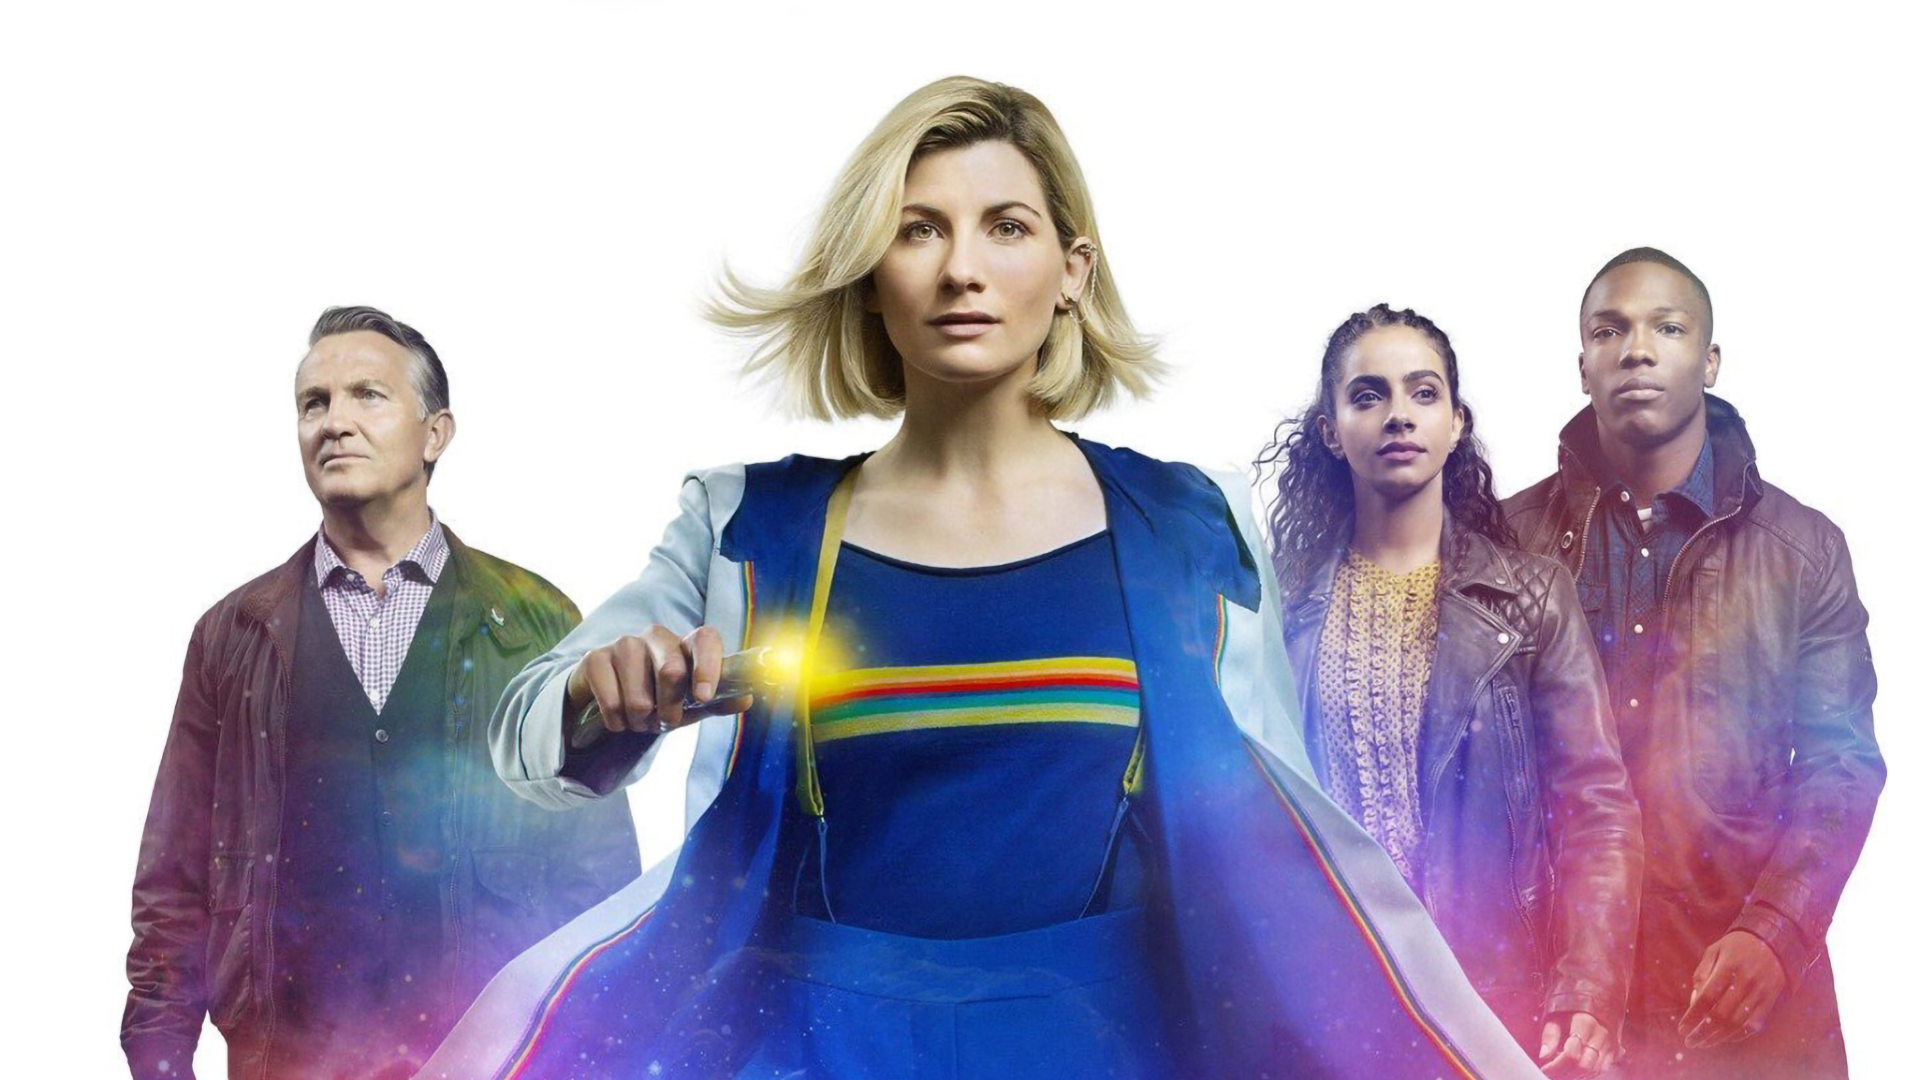 1920x1080 Doctor Who Season 12 1080p Laptop Full Hd Wallpaper Hd